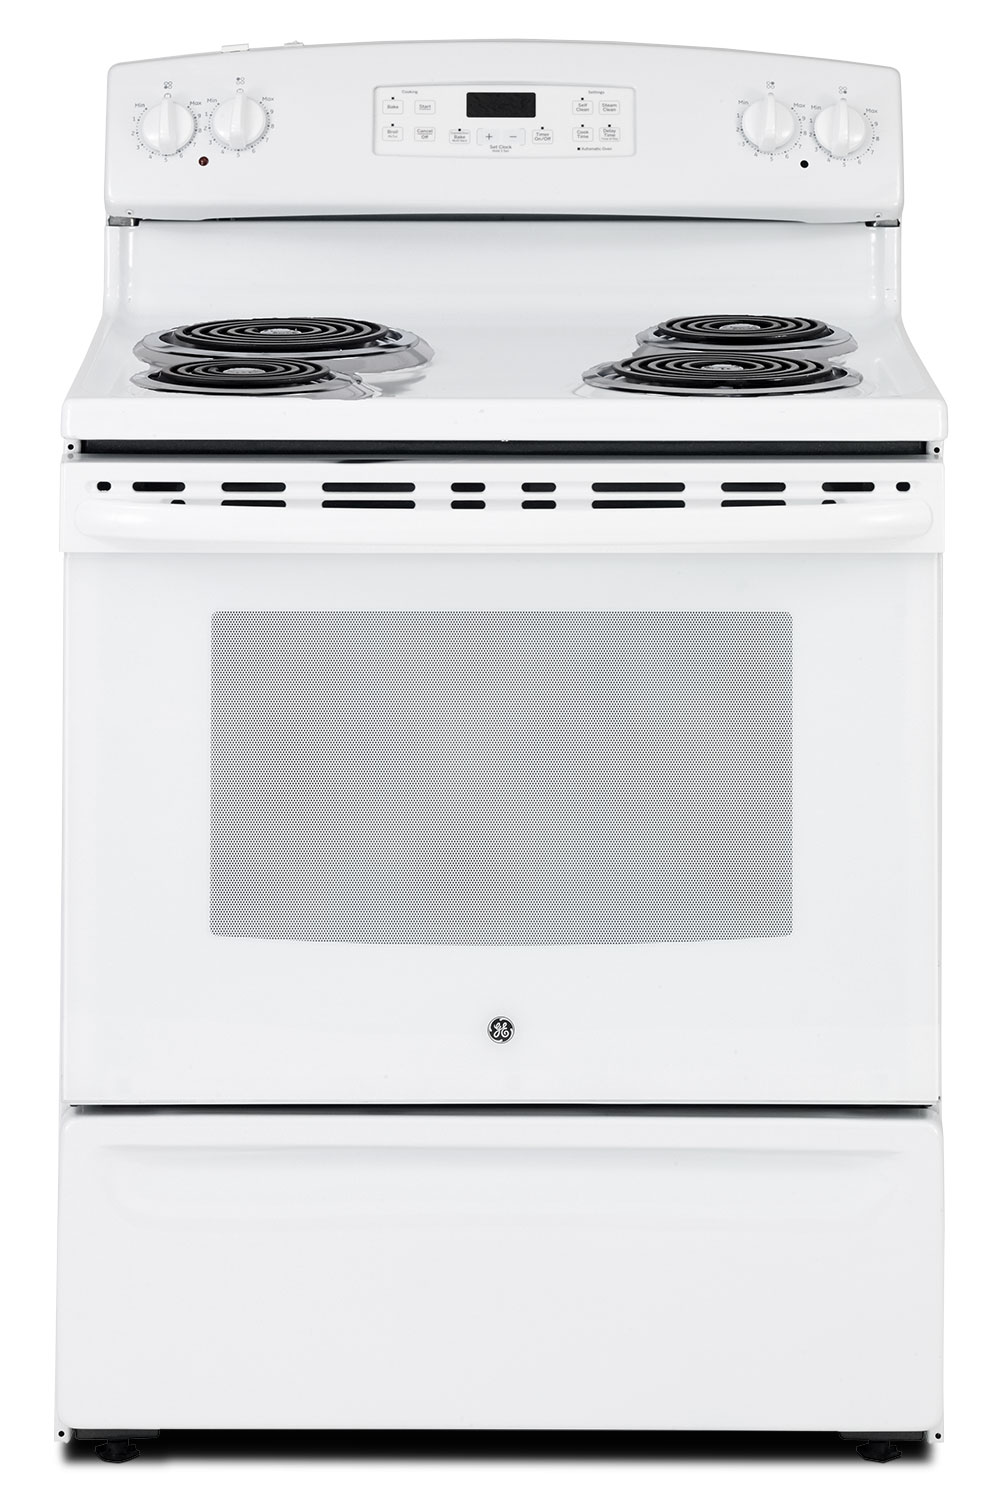 GE 5.0 Cu. Ft. Freestanding Electric Range – JCB560DJWW